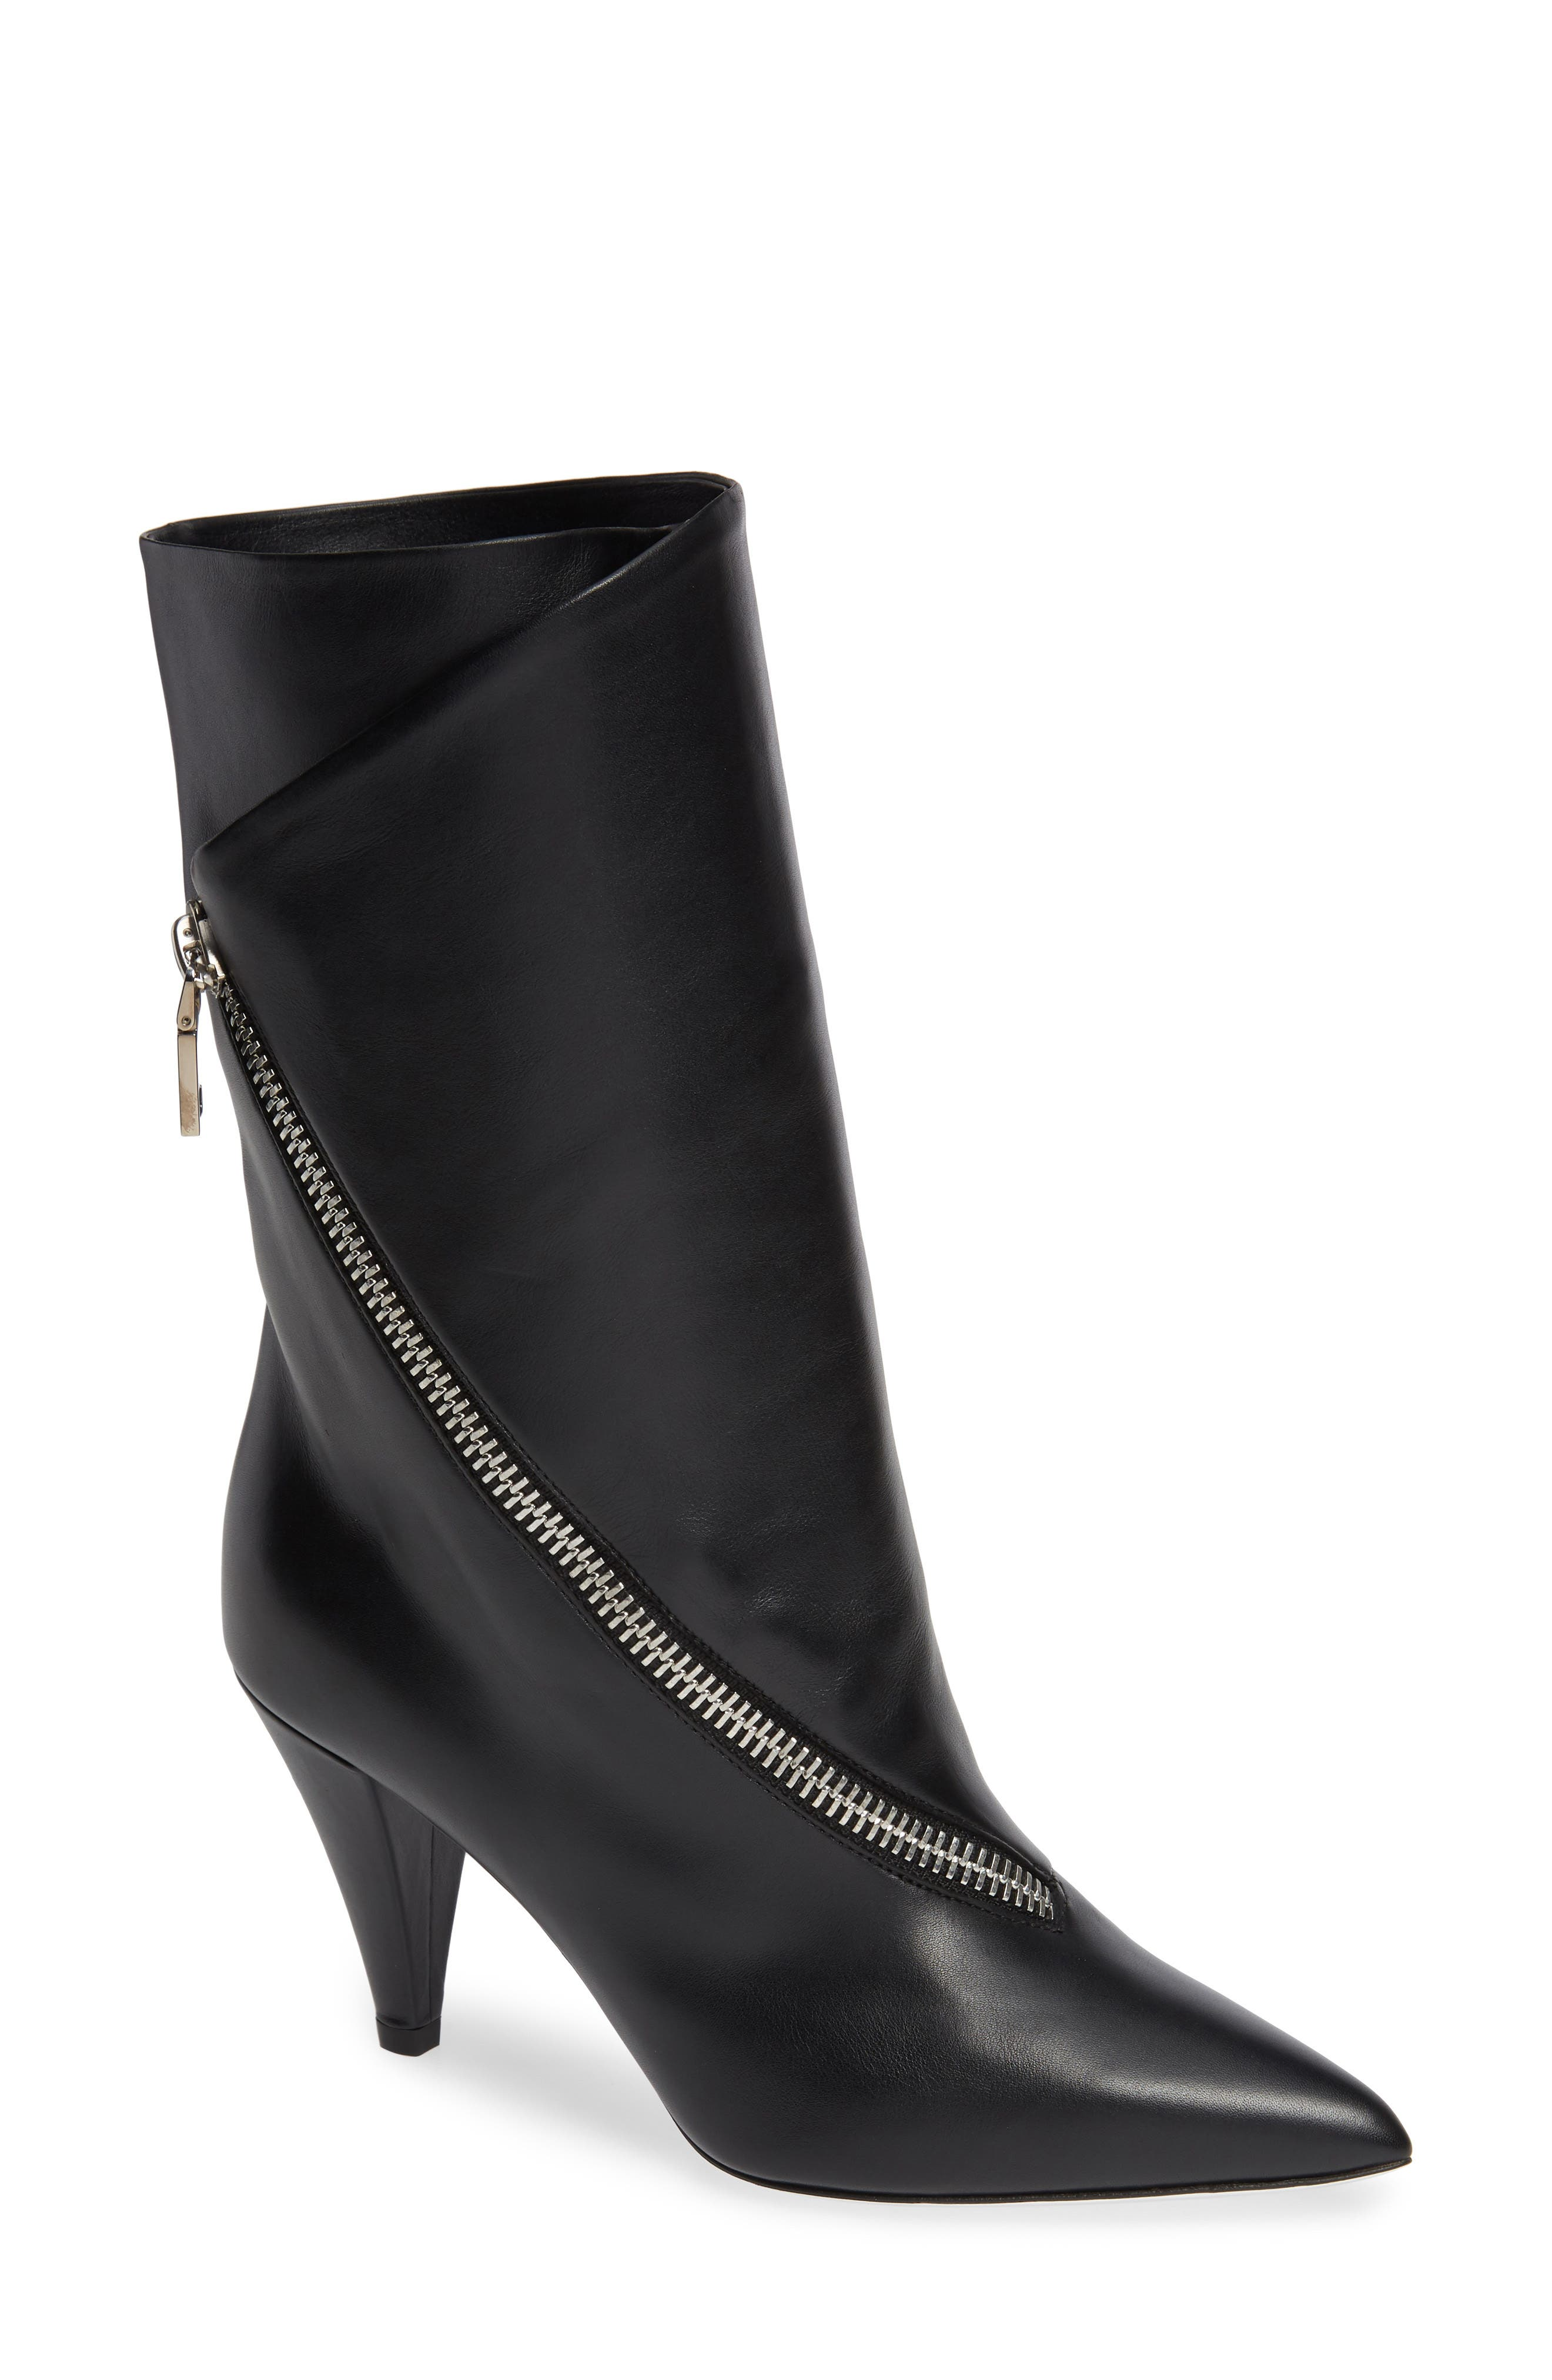 Givenchy Show Bootie, Black